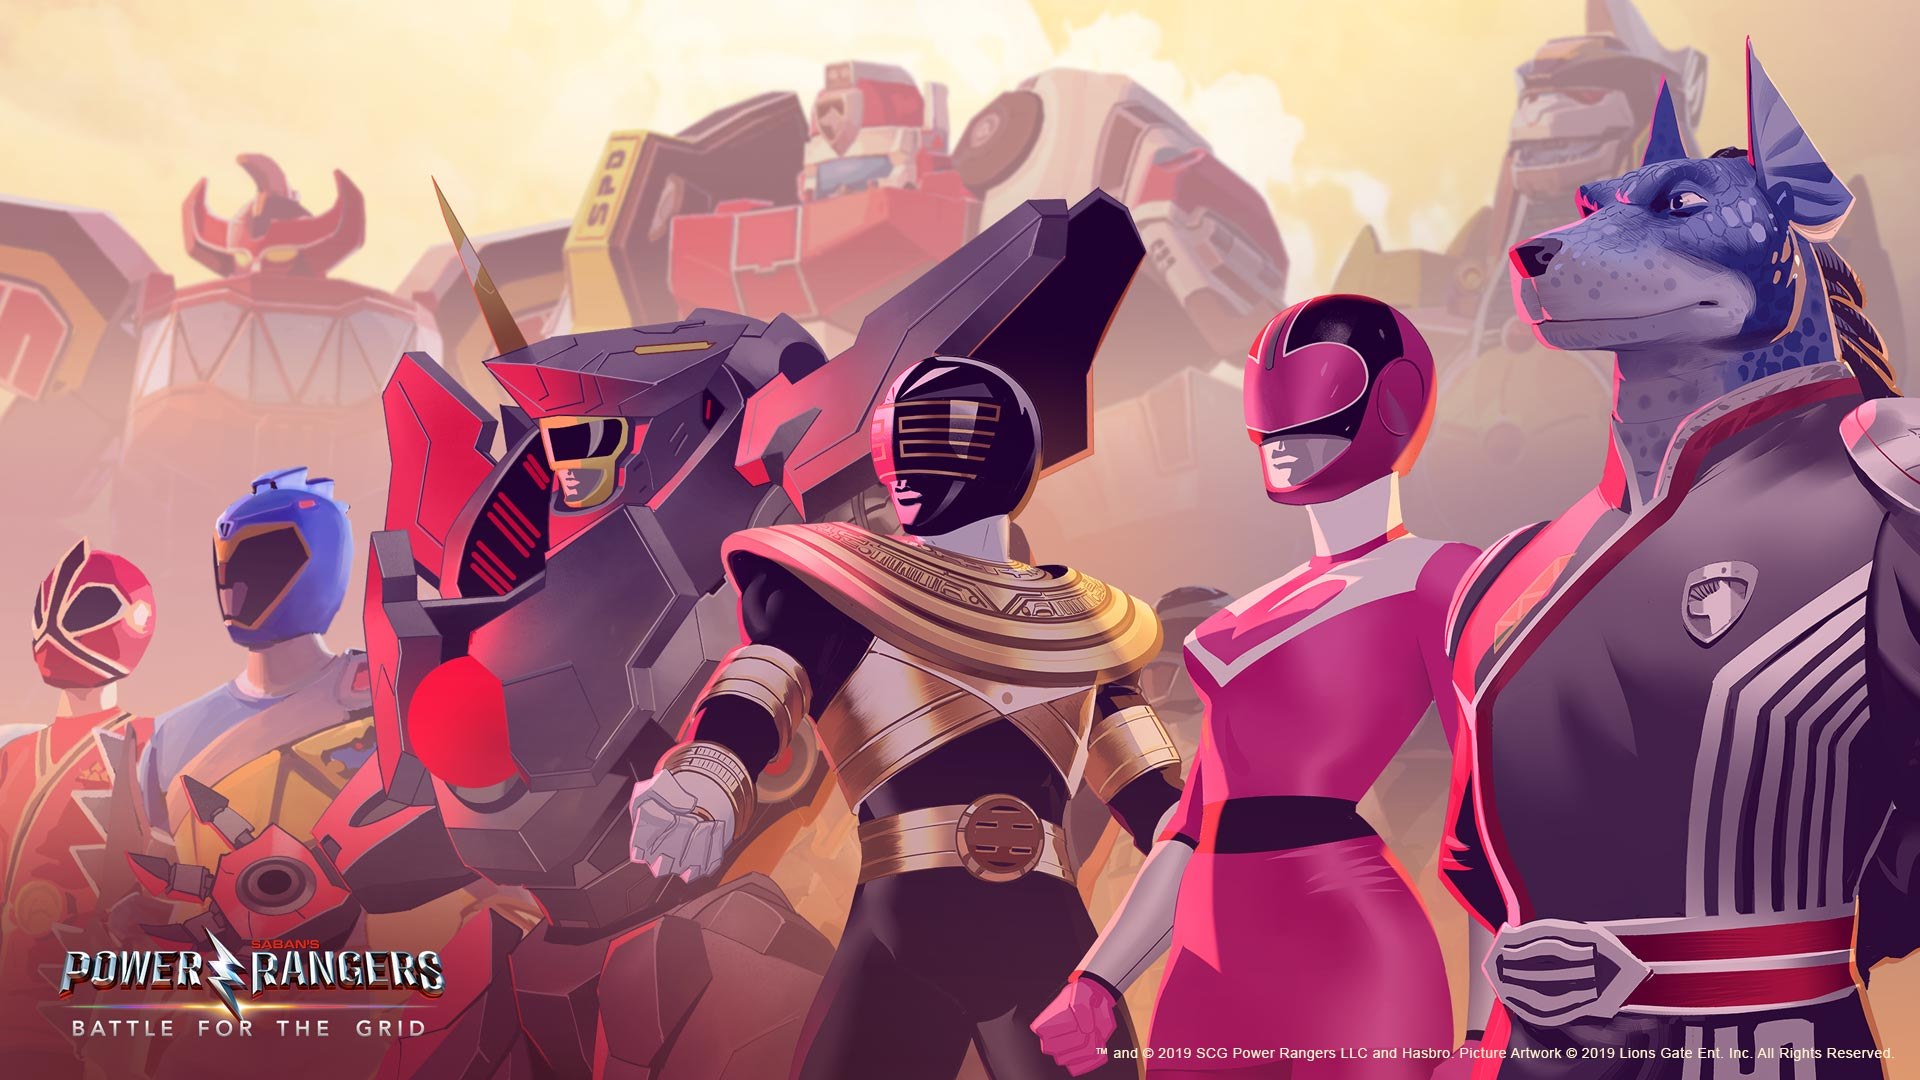 Power Rangers Lord Zedd 5 out of 6 image gallery